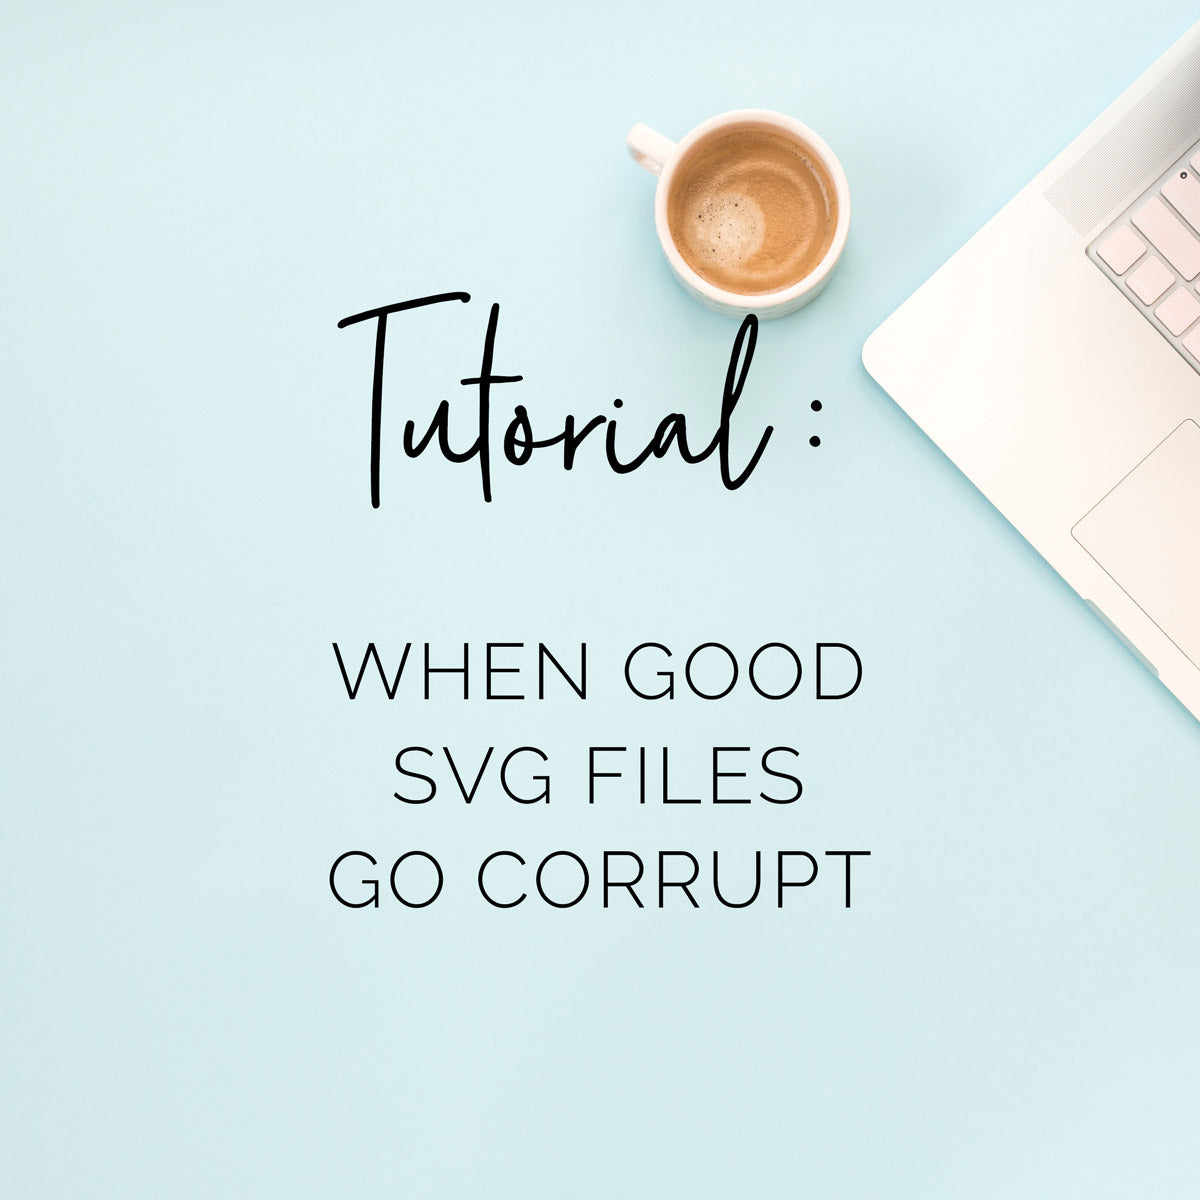 Tutorial: How to Fix Corrupt SVG Files for Silhouette and Cricut Software